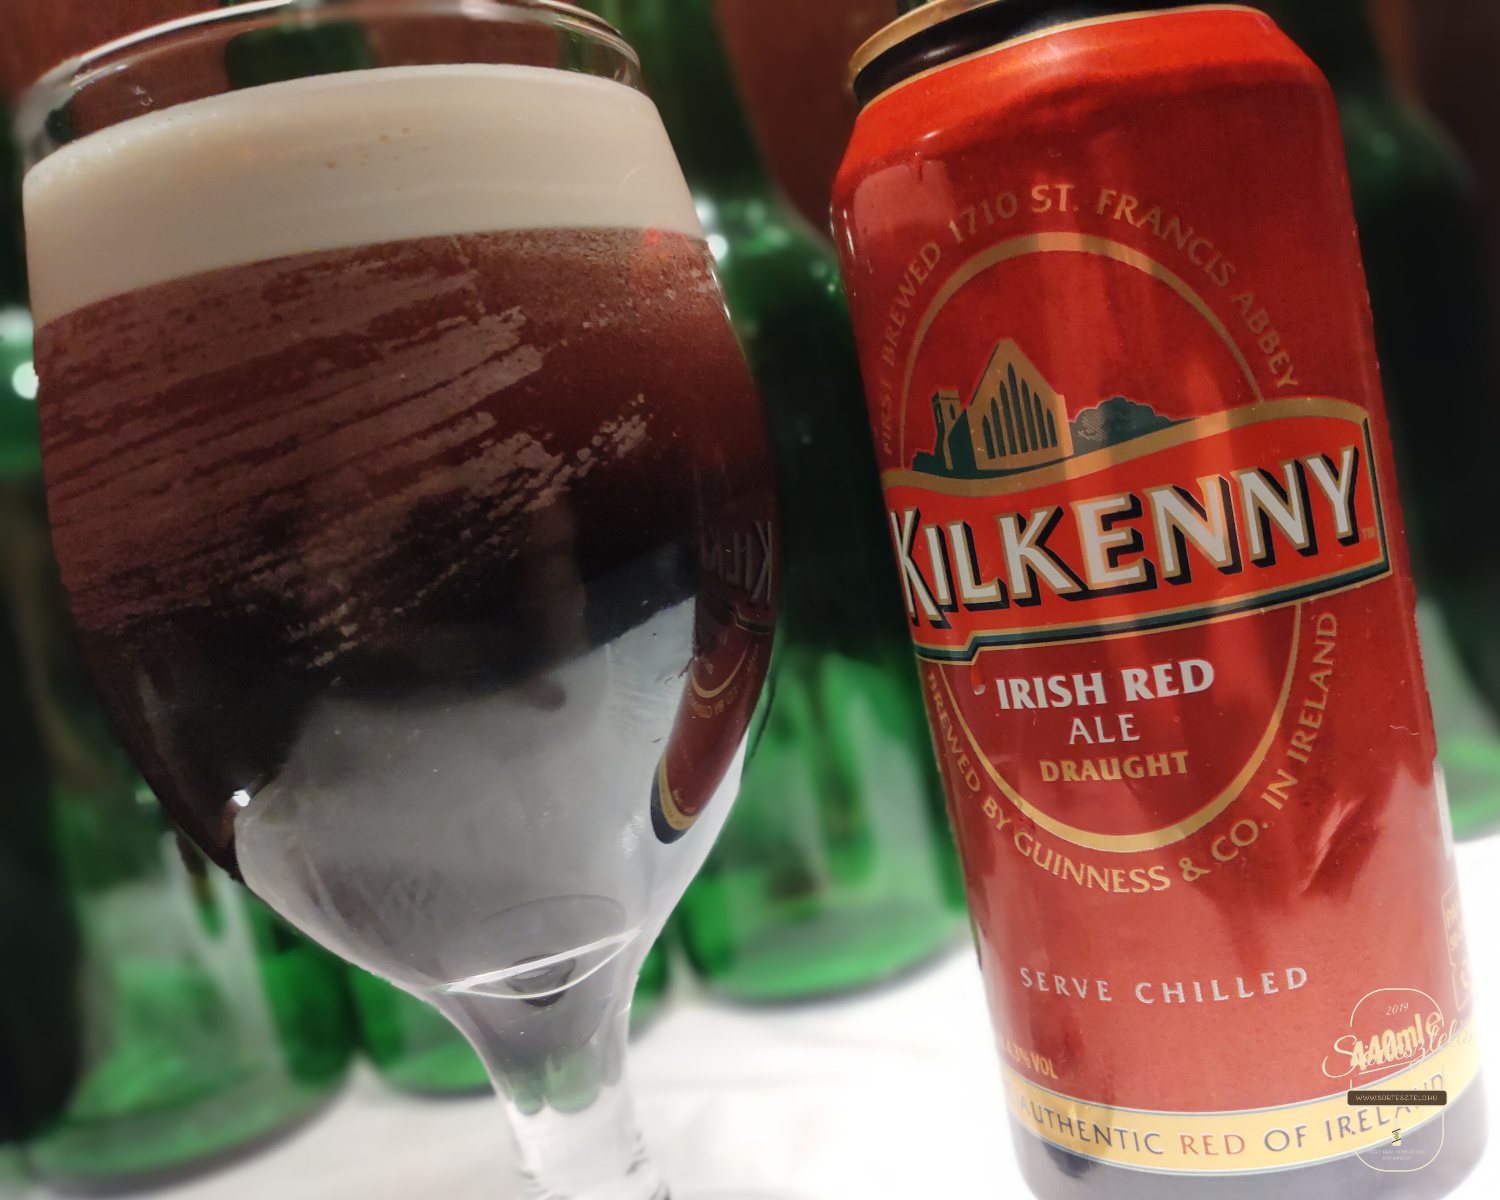 Kilkenny Irish Red Ale - kifőzte meg Kenny-t?